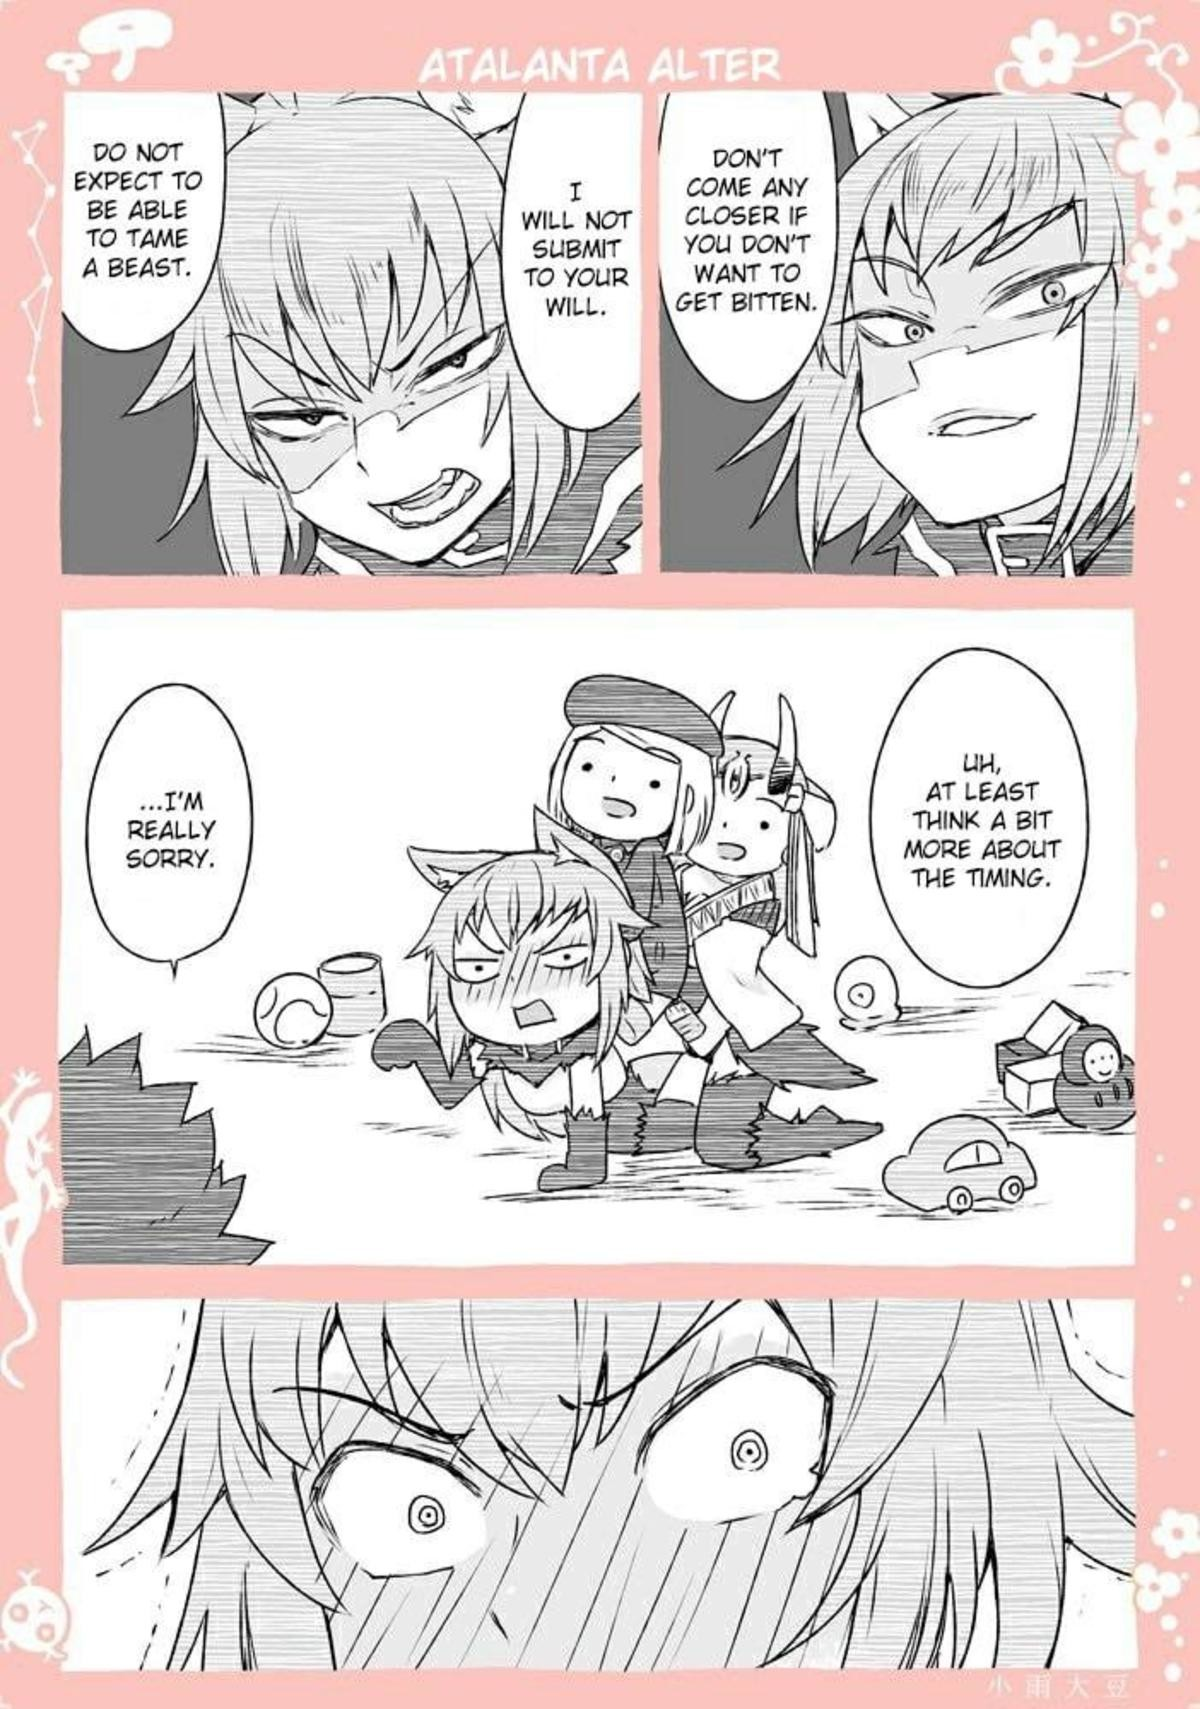 Bad Timing. Source timingbykosamedaizu/ https://twitter.com/kosamedaizu/status/990875800546111488 join list: Fate (413 subs)Mention History join list:. Atalanta is so cute when she gets flustered and embarrassed